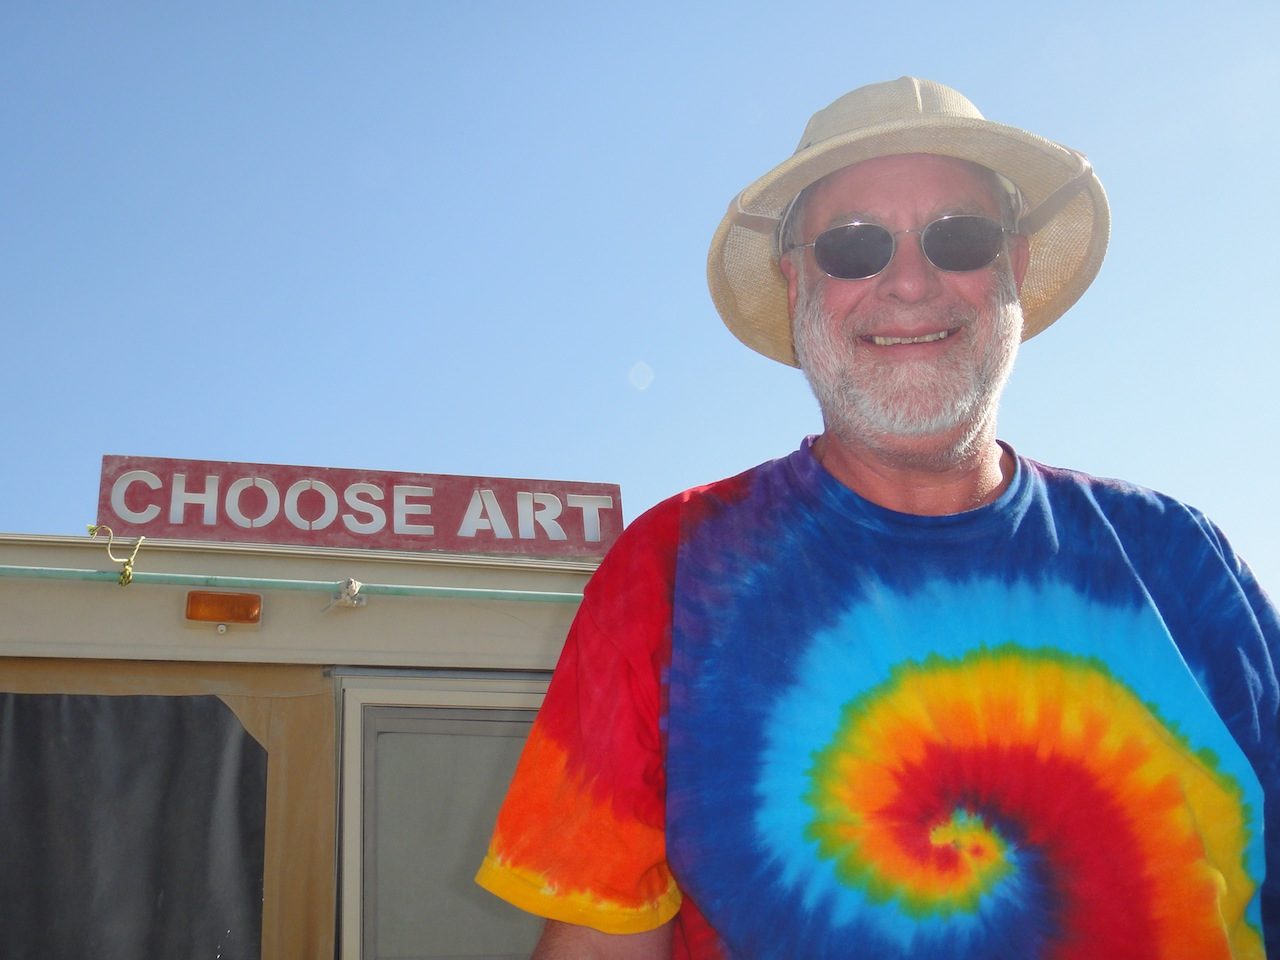 Burning Man 2013. He loved the Choose Art sign that Barry and I made and used it to decorate his home.